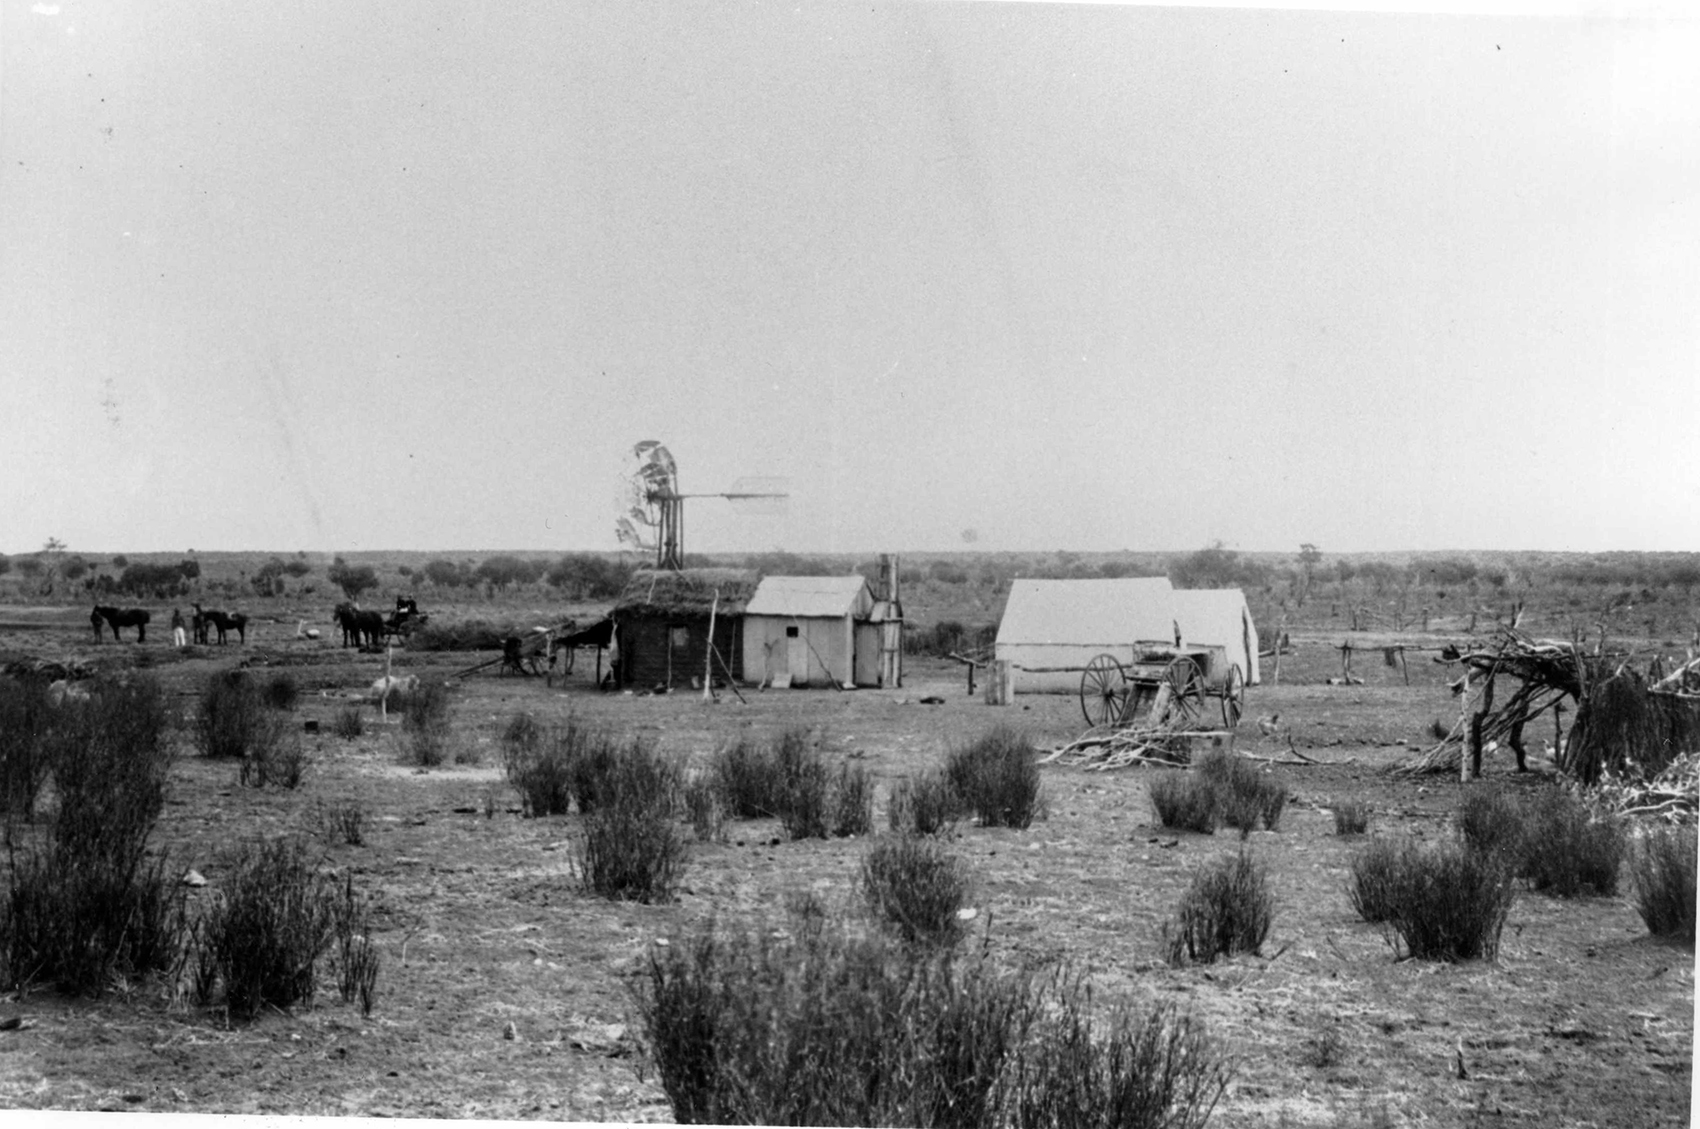 Woolshed on Anna Creek Station, late 1800's